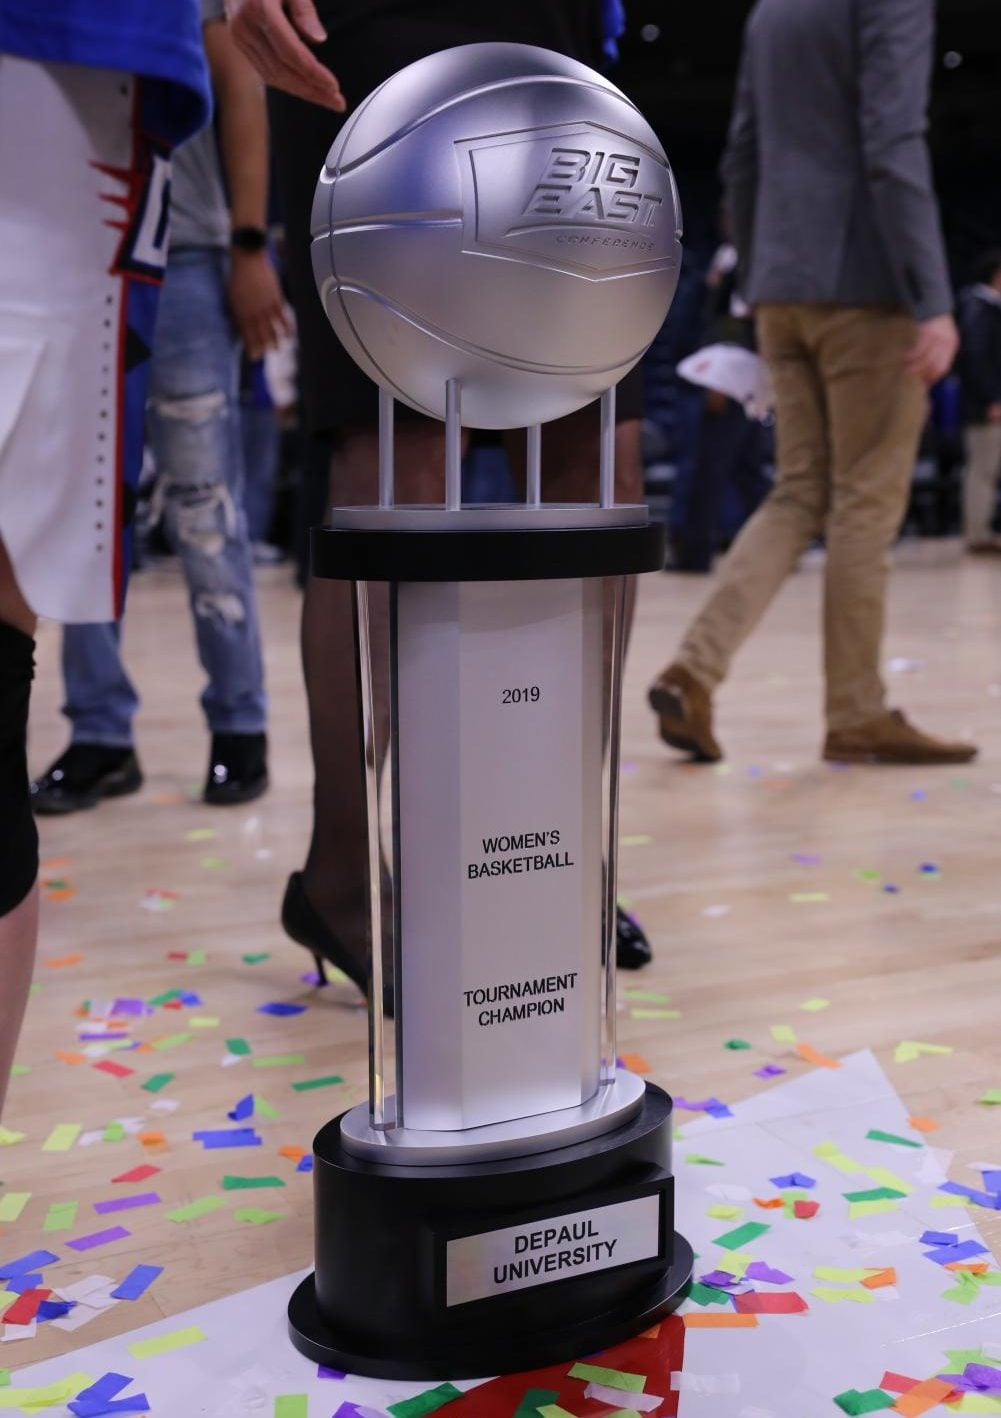 The+Big+East+Championship+trophy+sits+on+the+Wintrust+Arena+court+after+the+title+game+Tuesday+night+at+Wintrust+Arena.+Alexa+Sandler+%7C+The+DePaulia